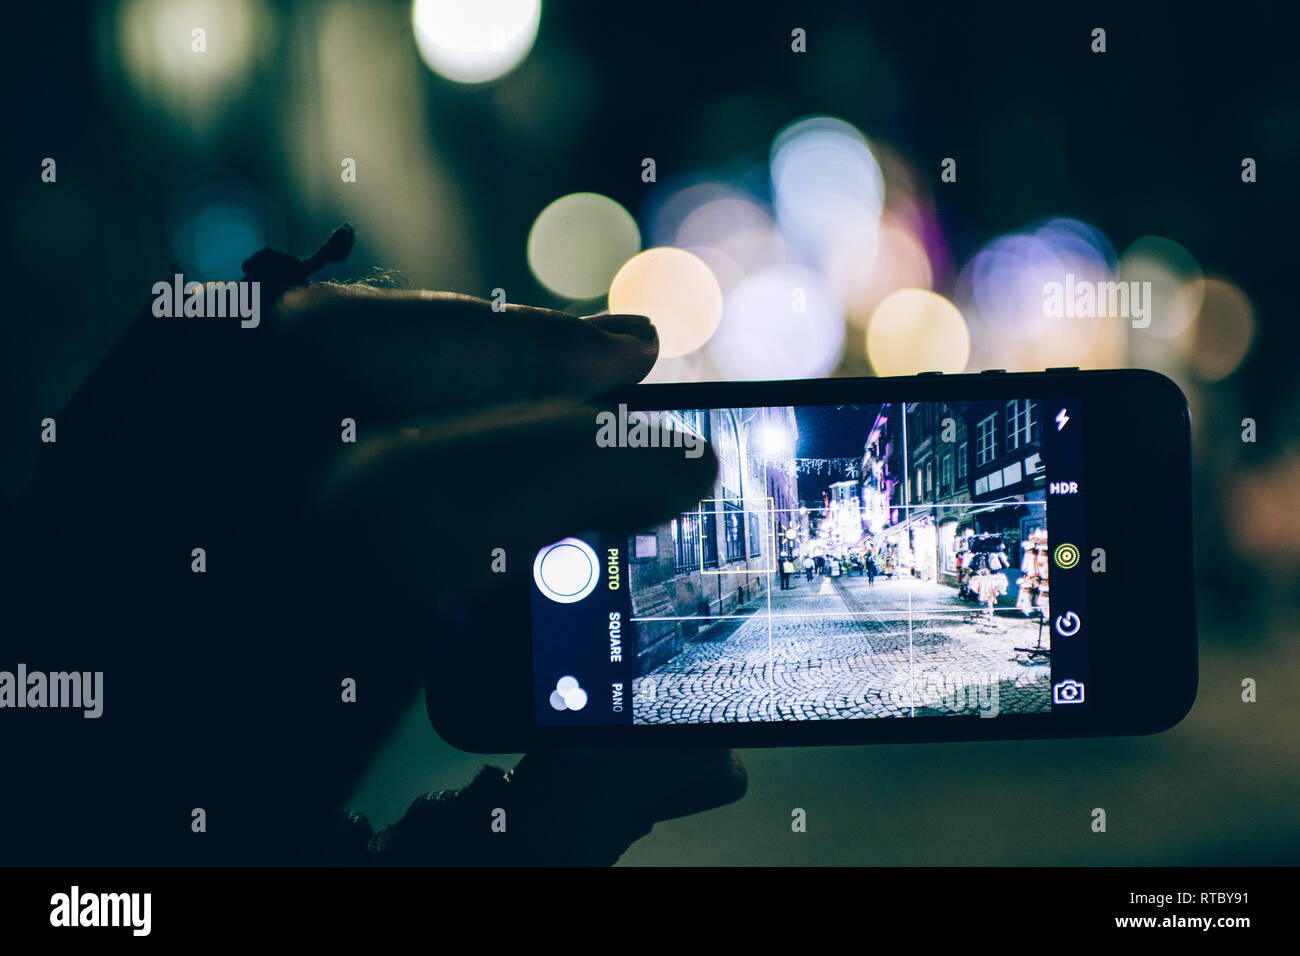 STRASBOURG, FRANCE - NOV 21, 2017: POV Tourist hand holding Apple iPhone smartphone in hand taking photographs of the Christmas Decorations of Christmas Market in Strasbourg - blue cold tones  - Stock Image